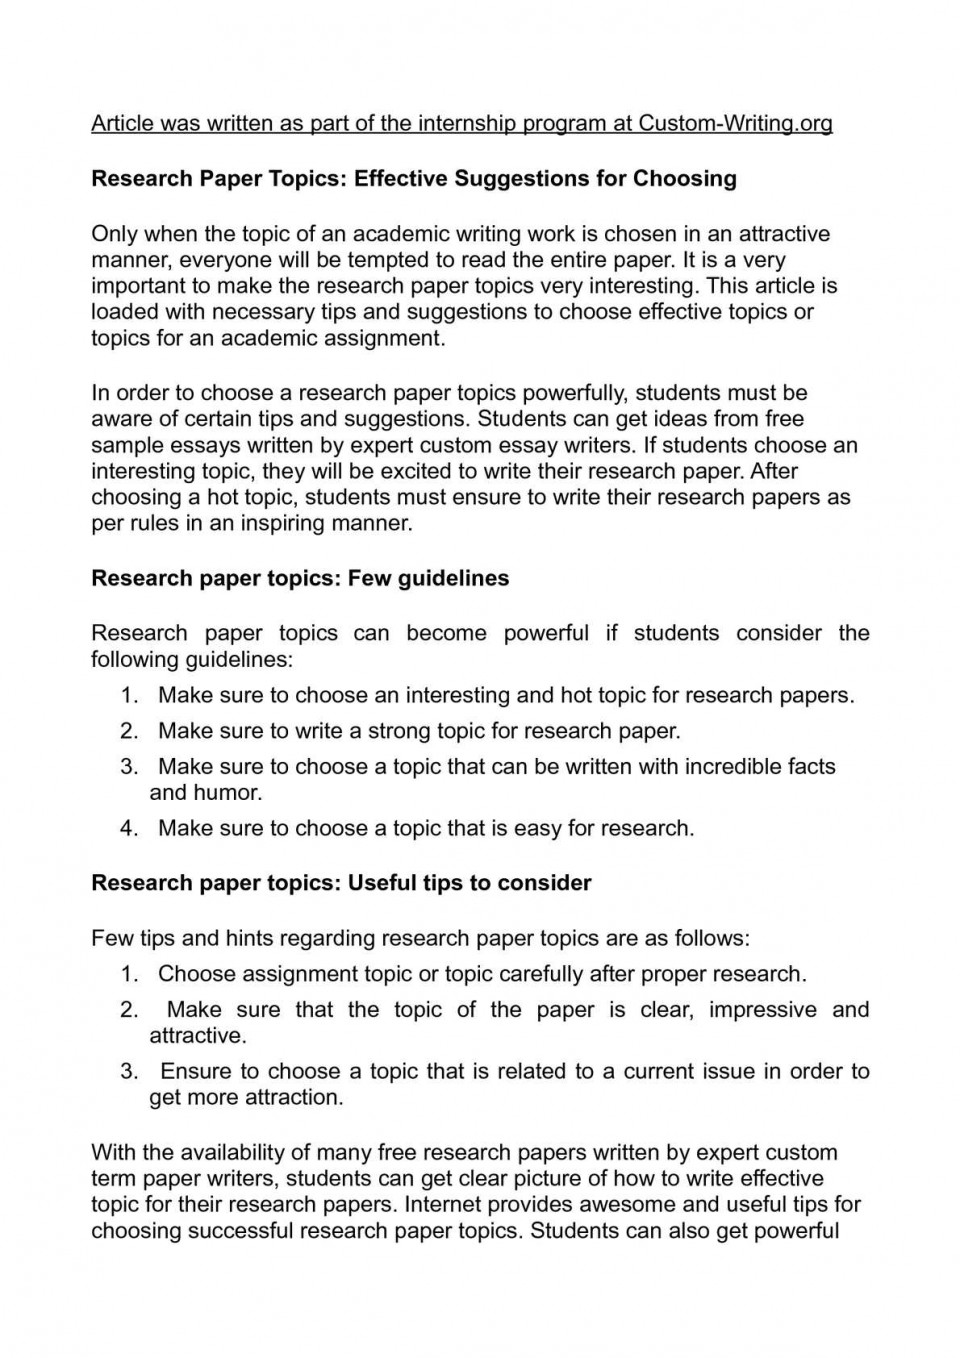 019 Research Paper Topics For Awful Best In Marketing About School Senior High 960